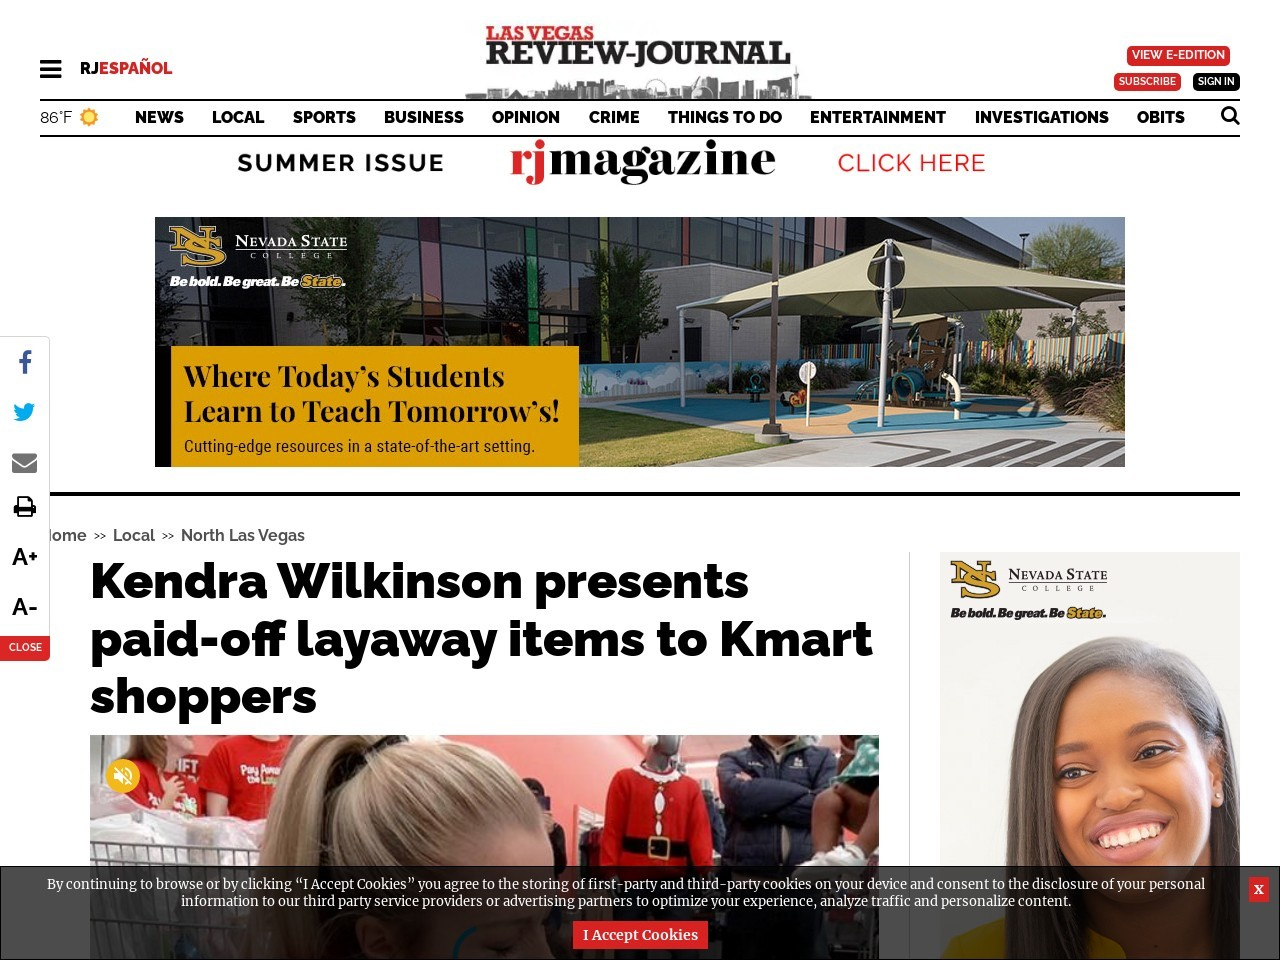 Kendra Wilkinson presents paid-off layaway items to Kmart shoppers